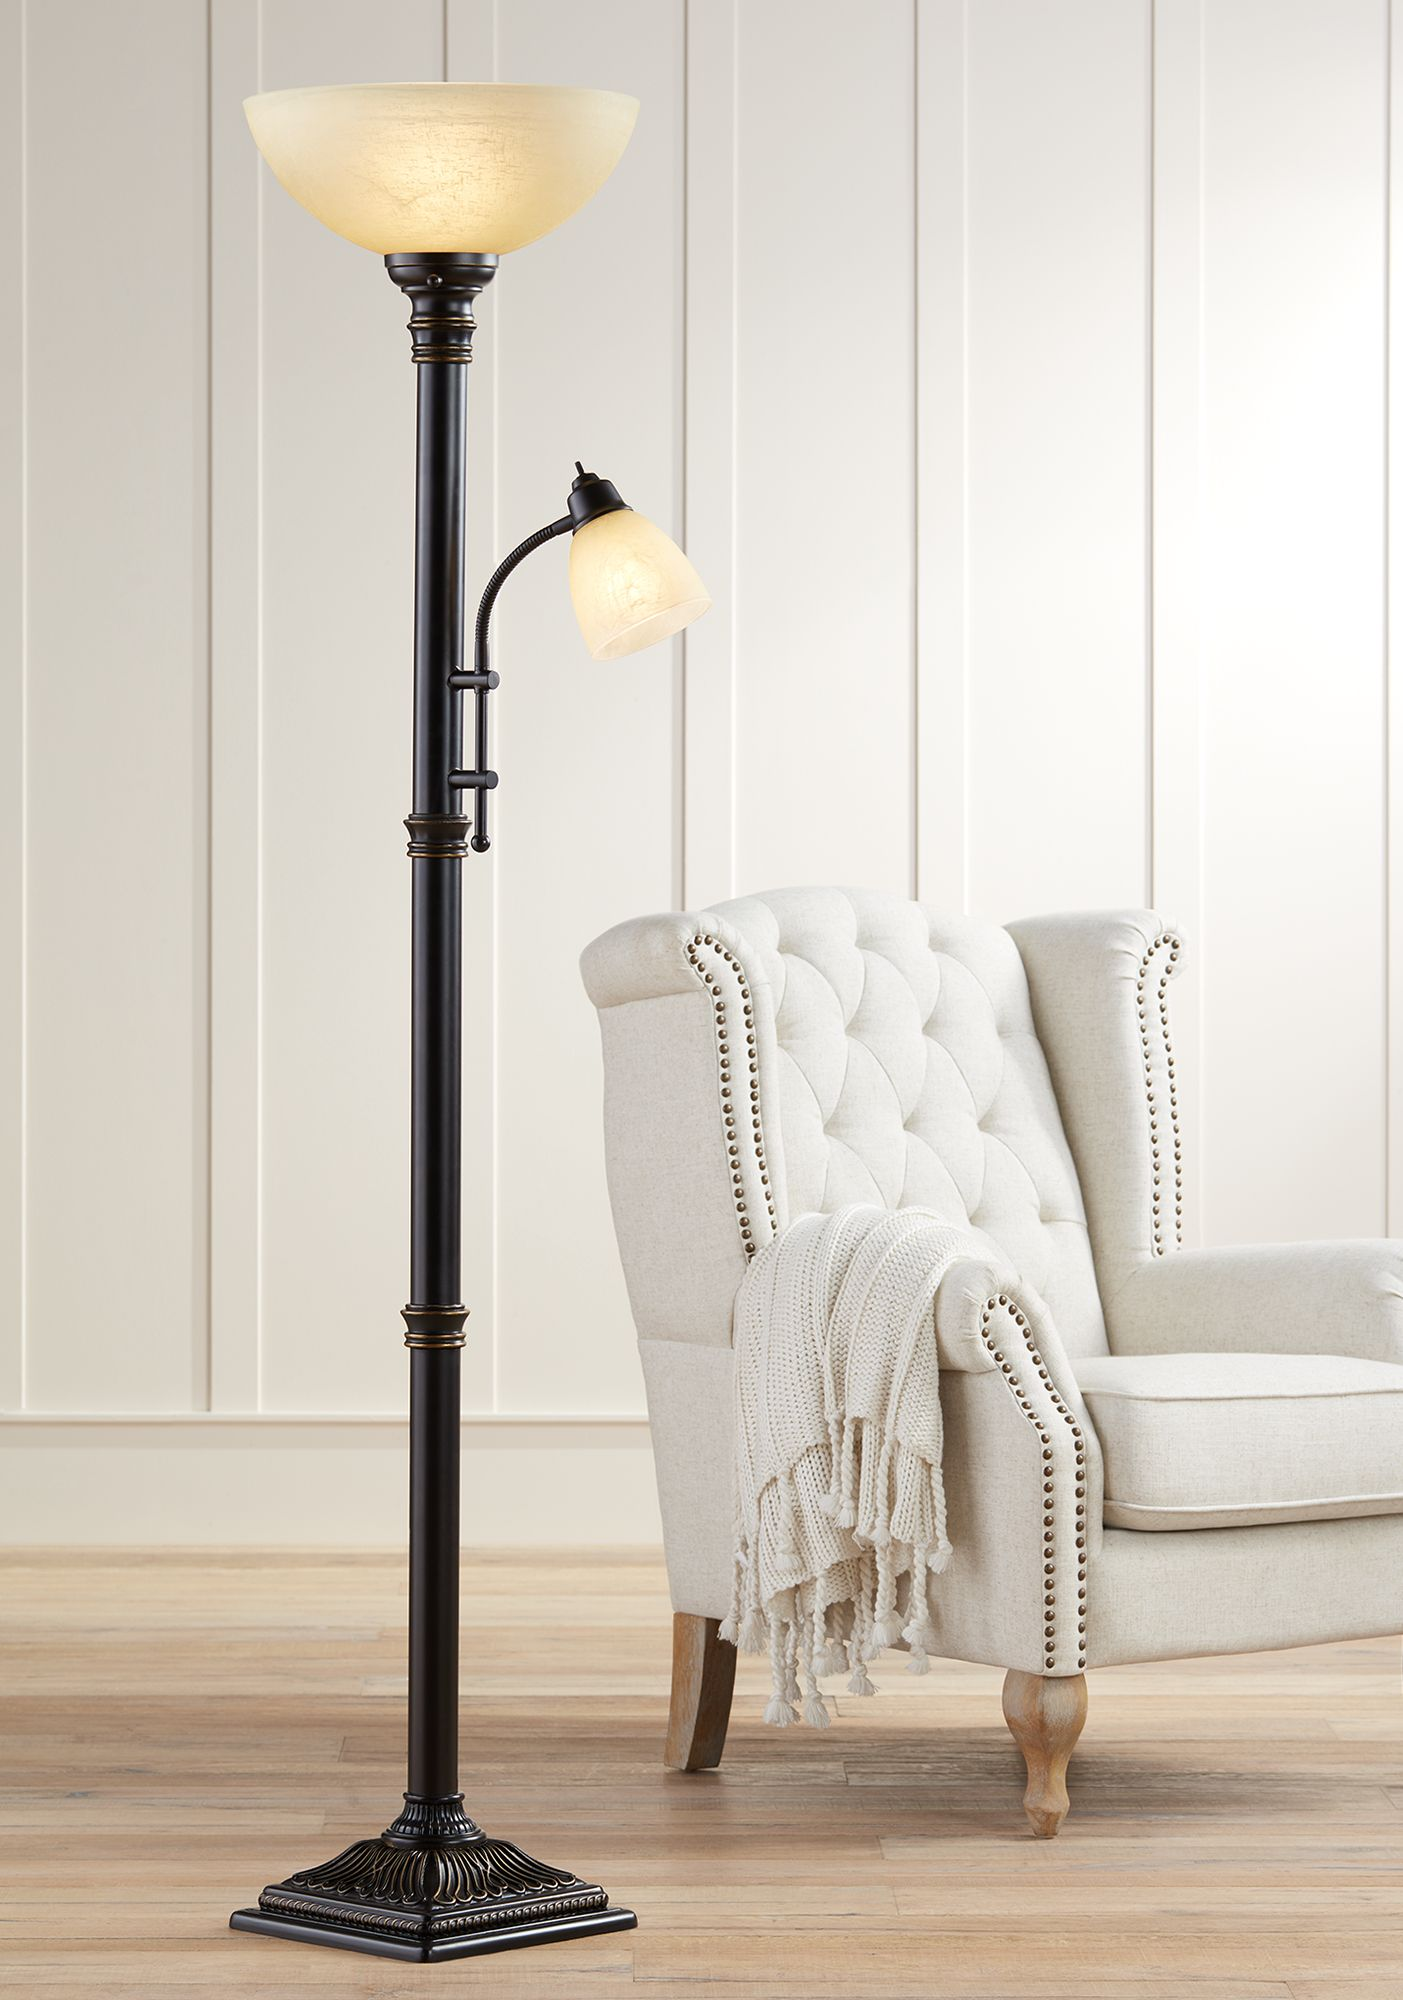 Regency Hill Traditional Torchiere Floor Lamp 2 Light